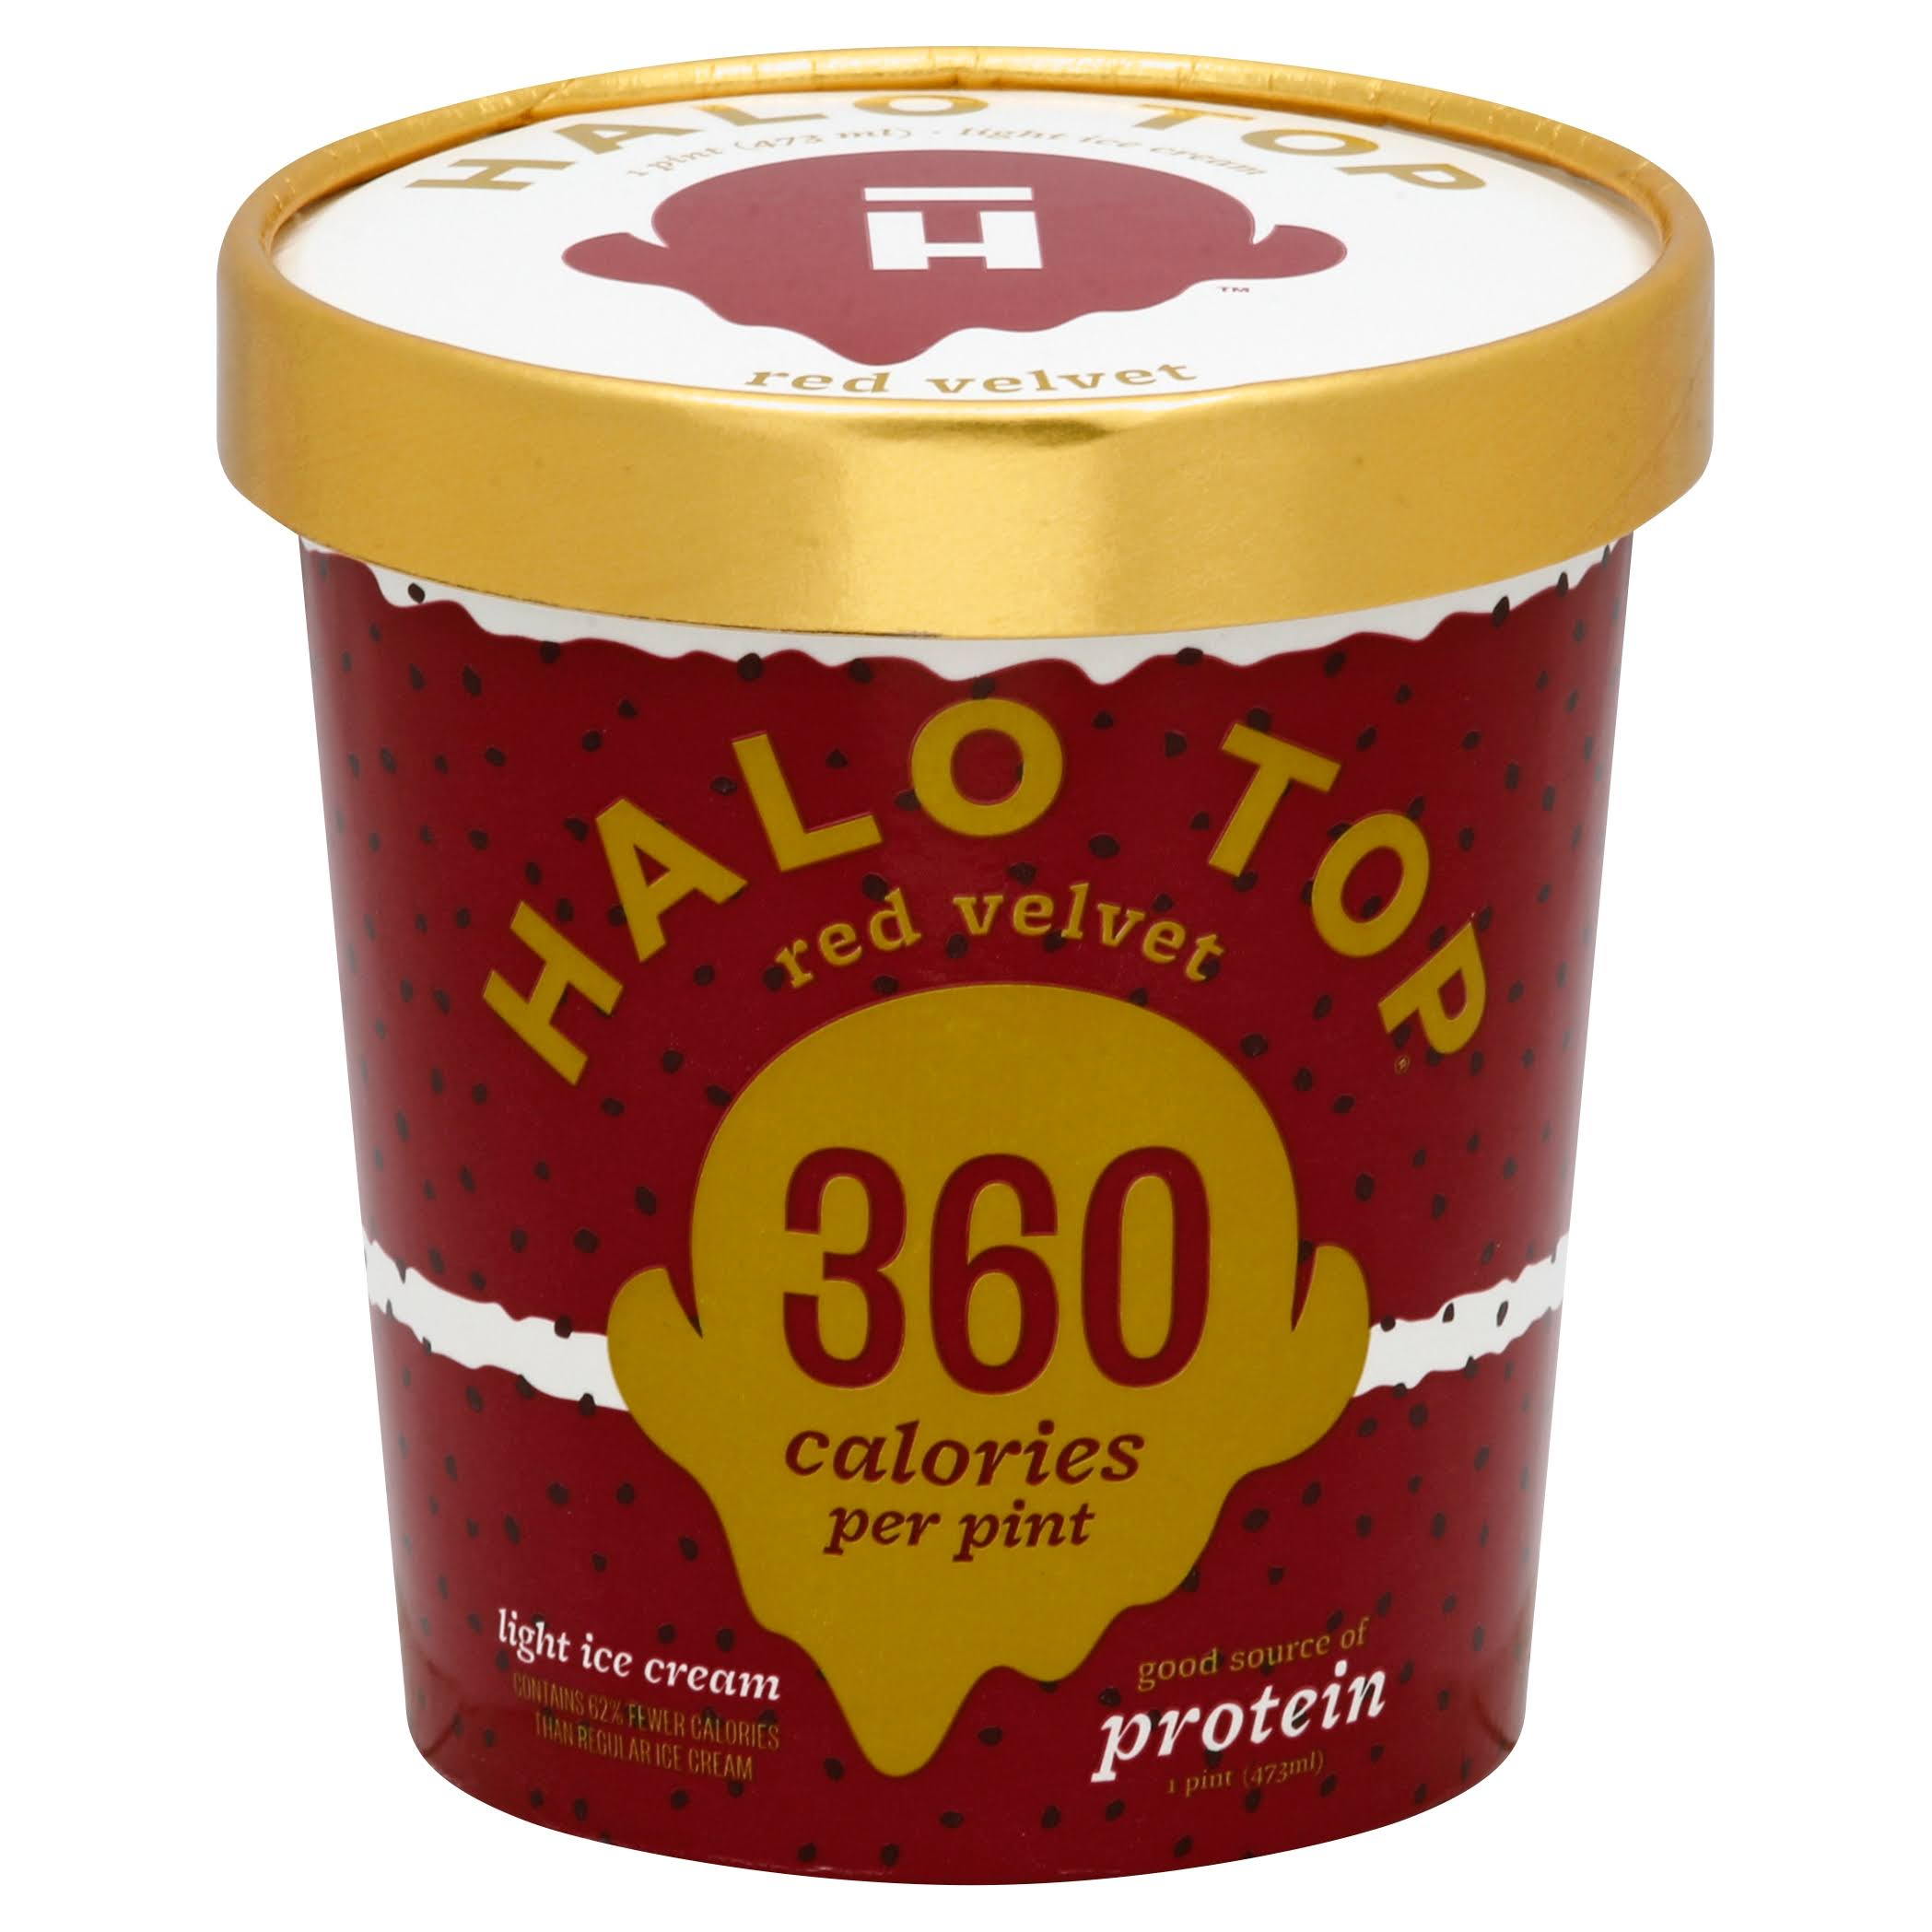 Halo Top Ice Cream, Light, Red Velvet - 1 pint